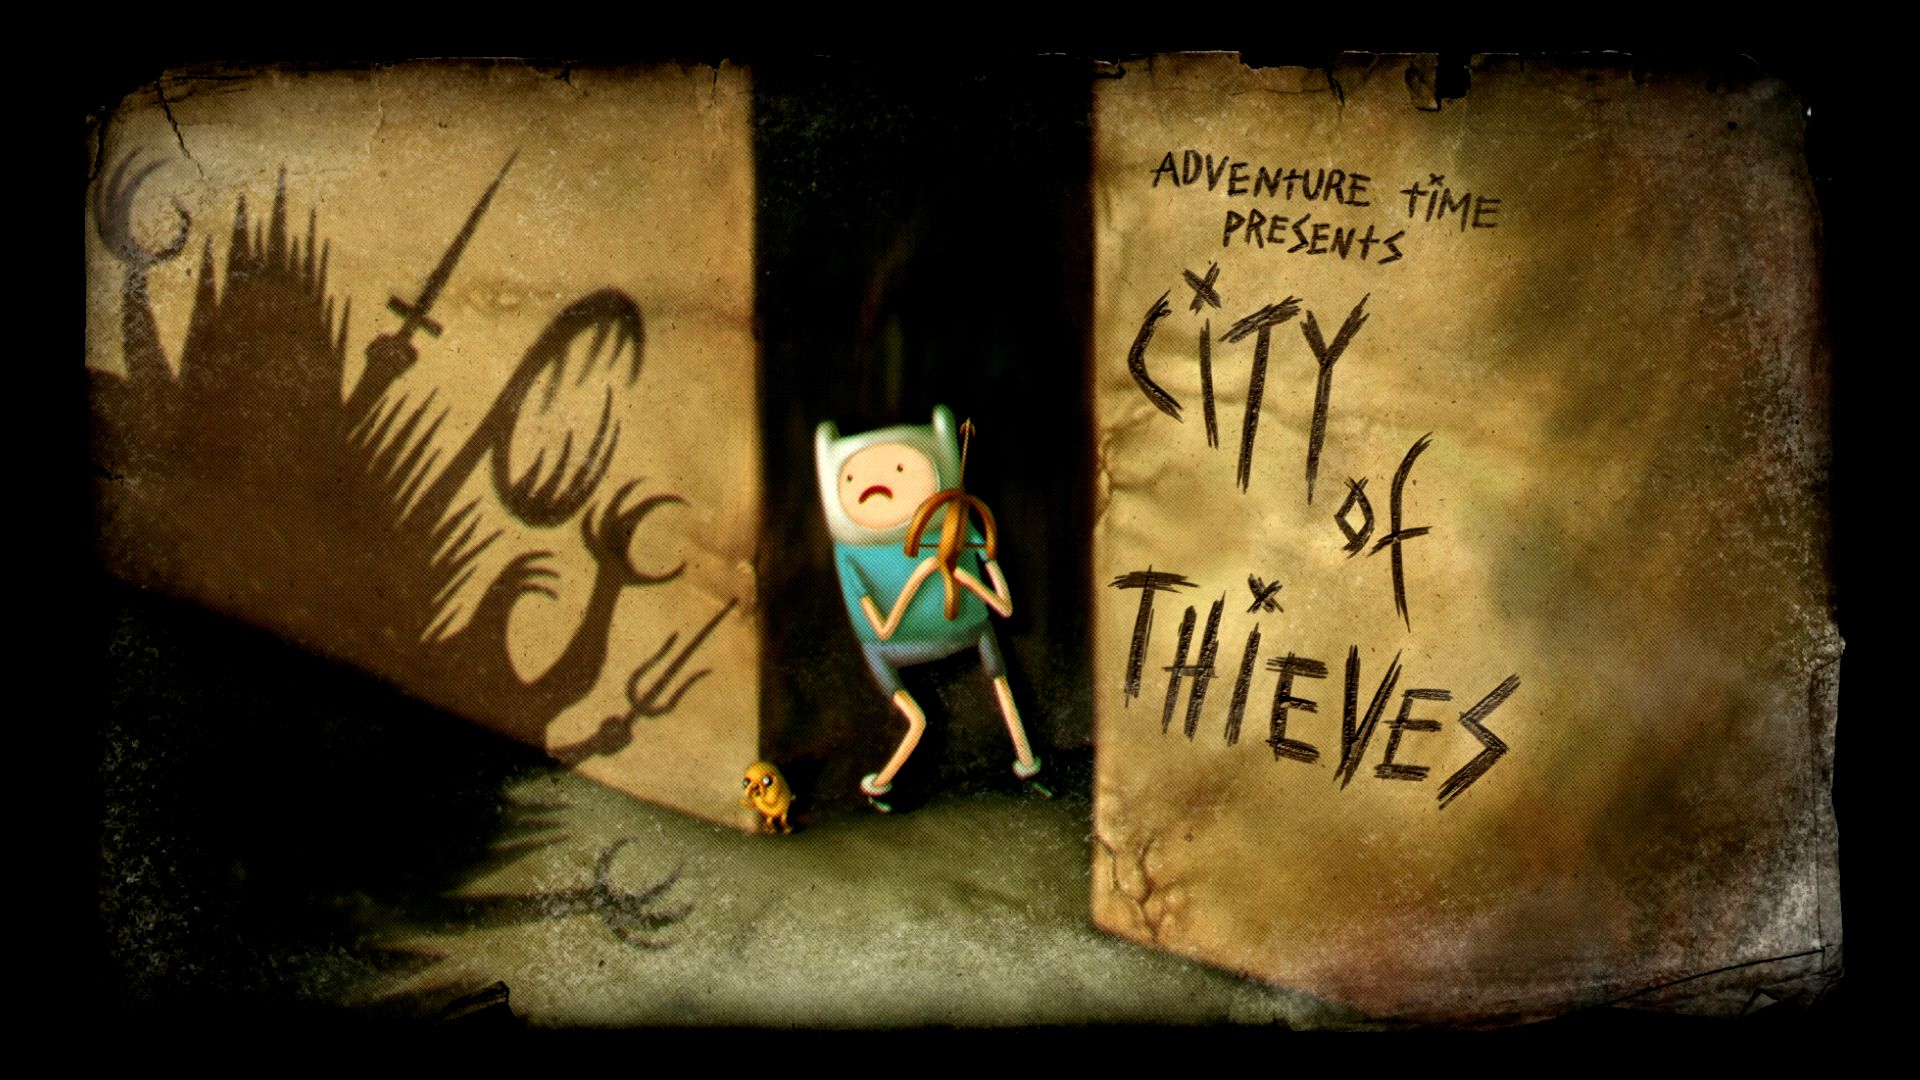 File:Titlecard S1E13 cityofthieves.jpg